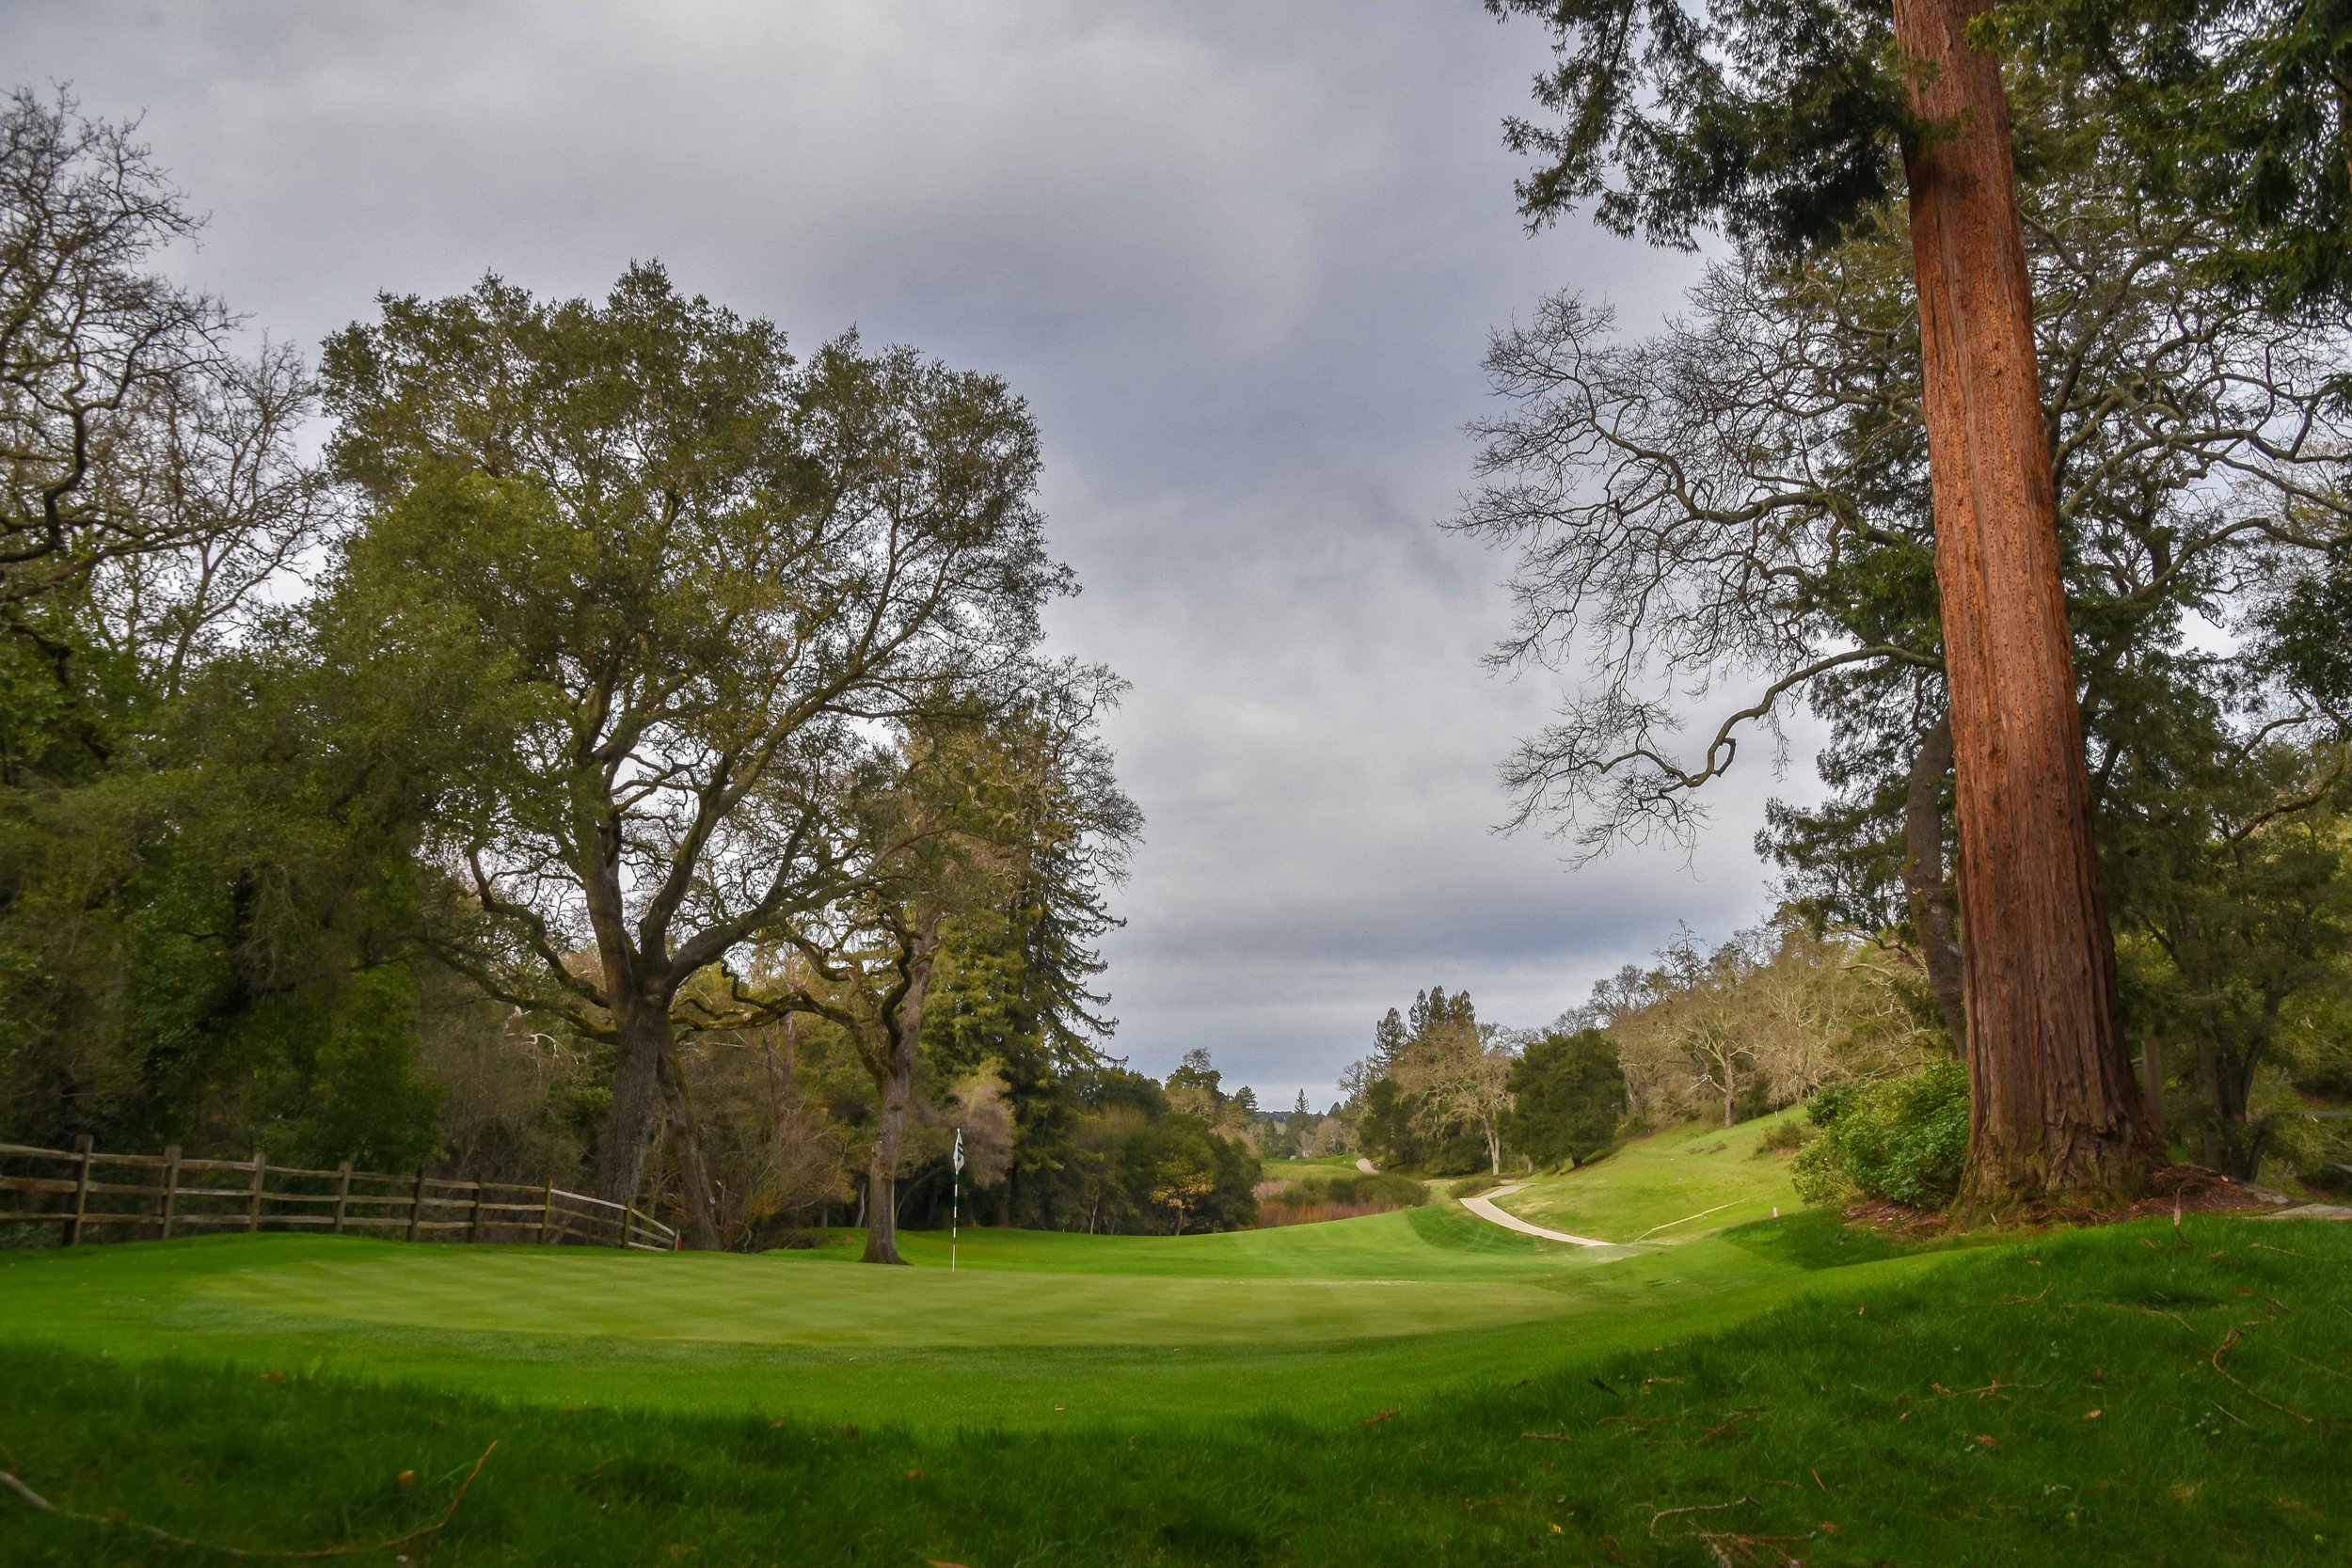 The view from behind the 10th green at Orinda Country Club